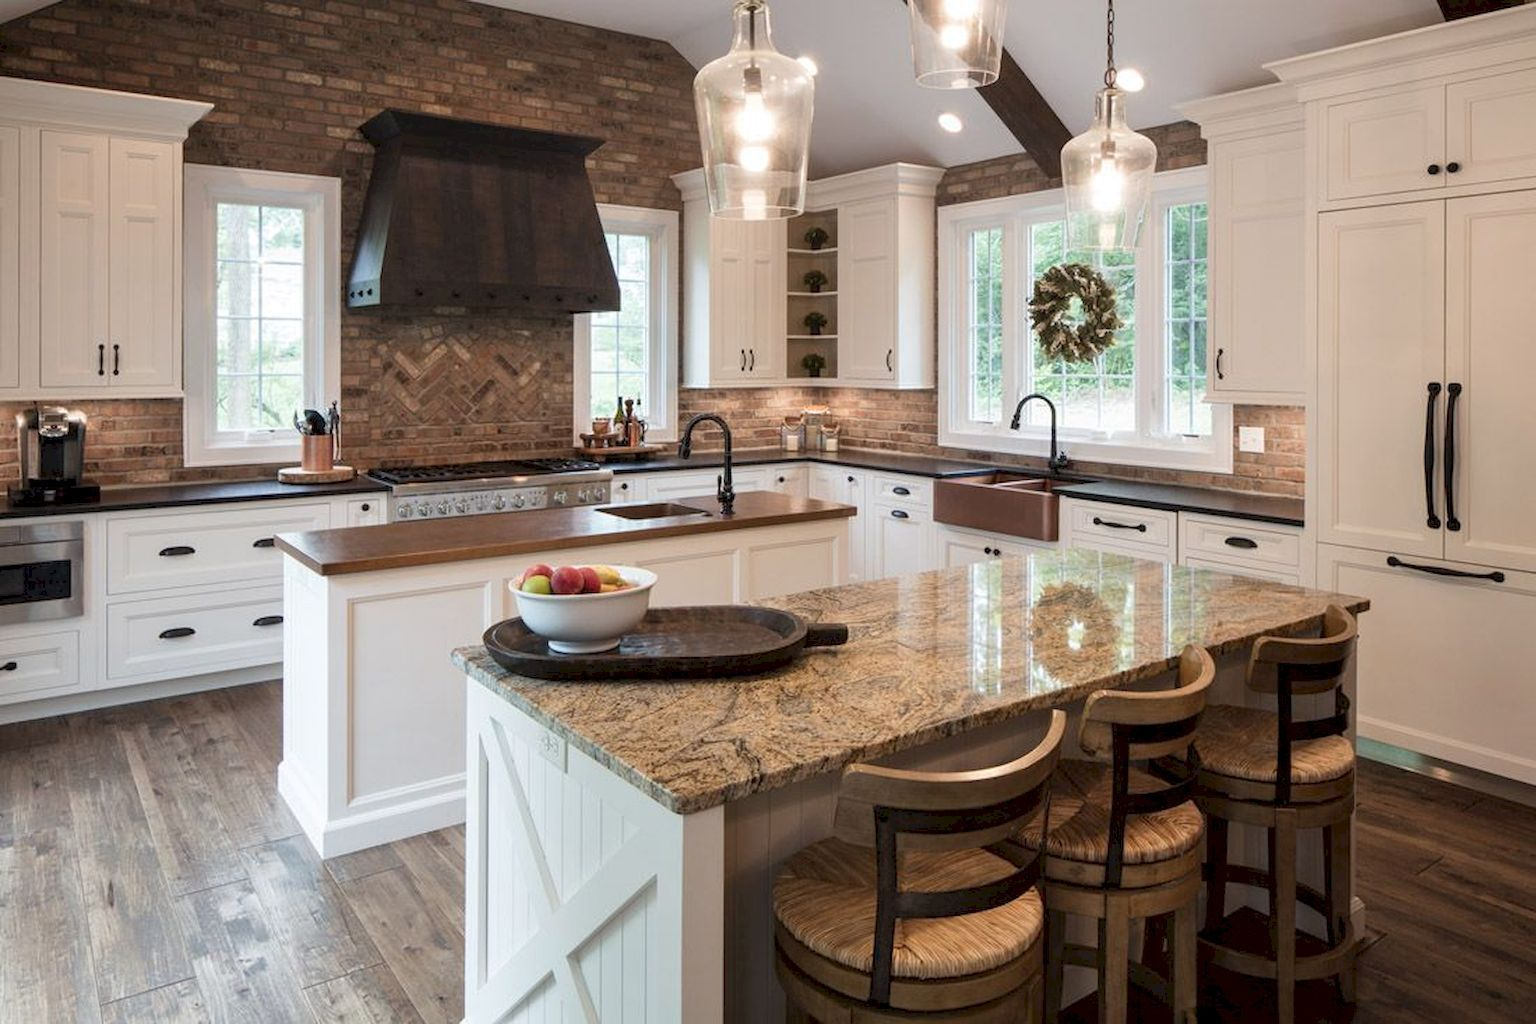 best off white kitchen cabinets design ideas 45 off white kitchen cabinets white kitchen on kitchen remodel not white id=64001